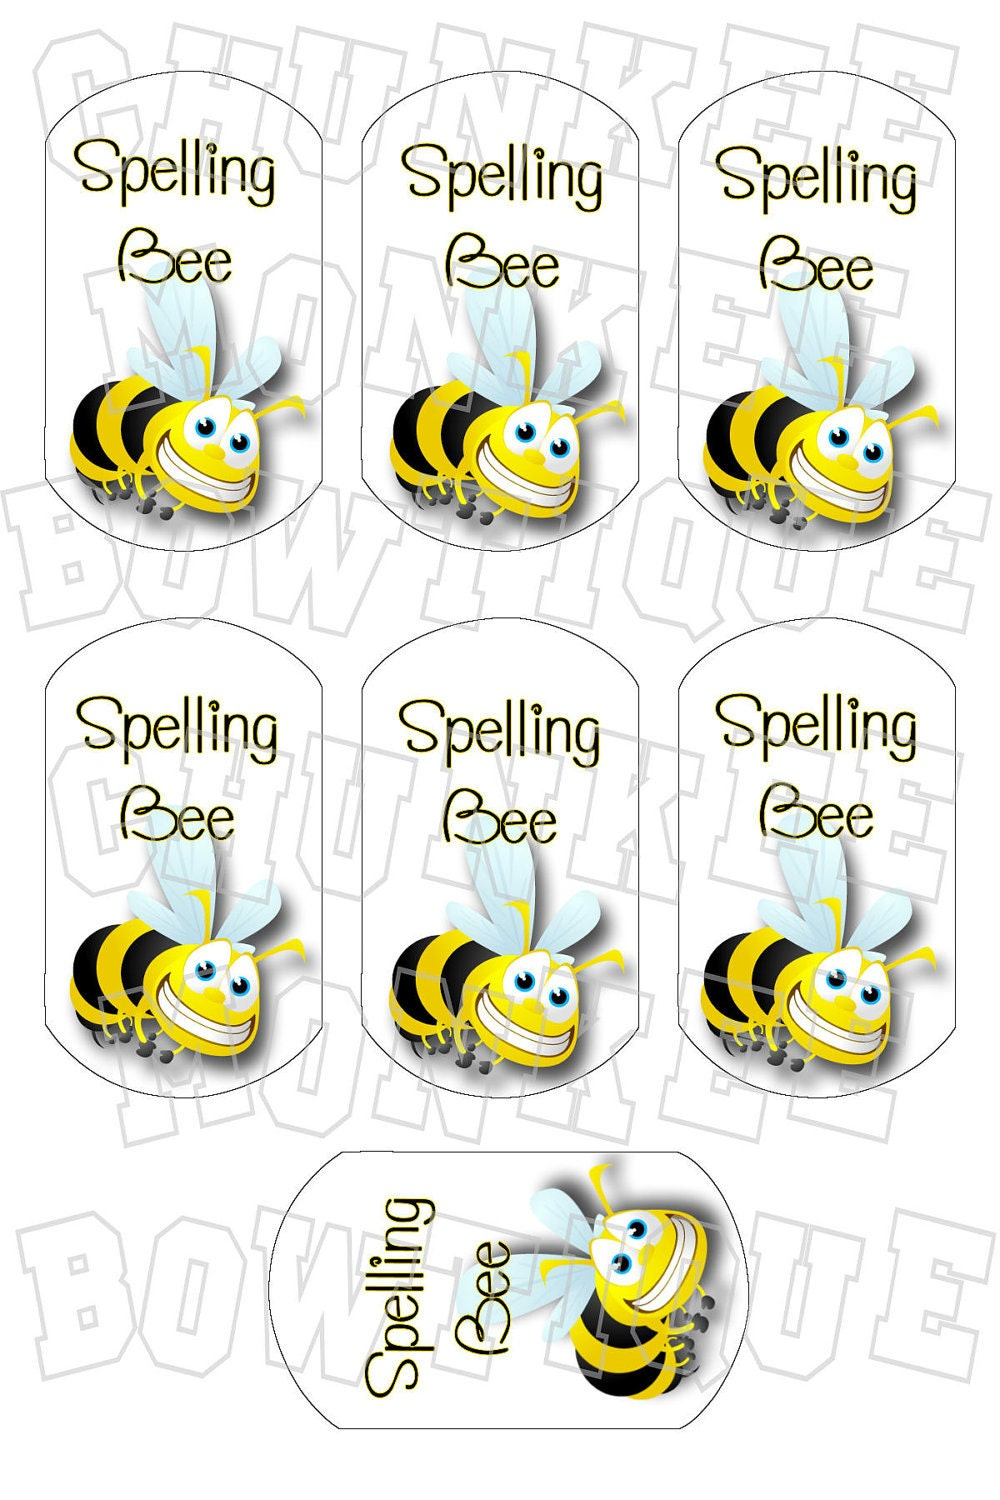 Spelling bee on etsy a global handmade and vintage - Decoraciones gramar ...